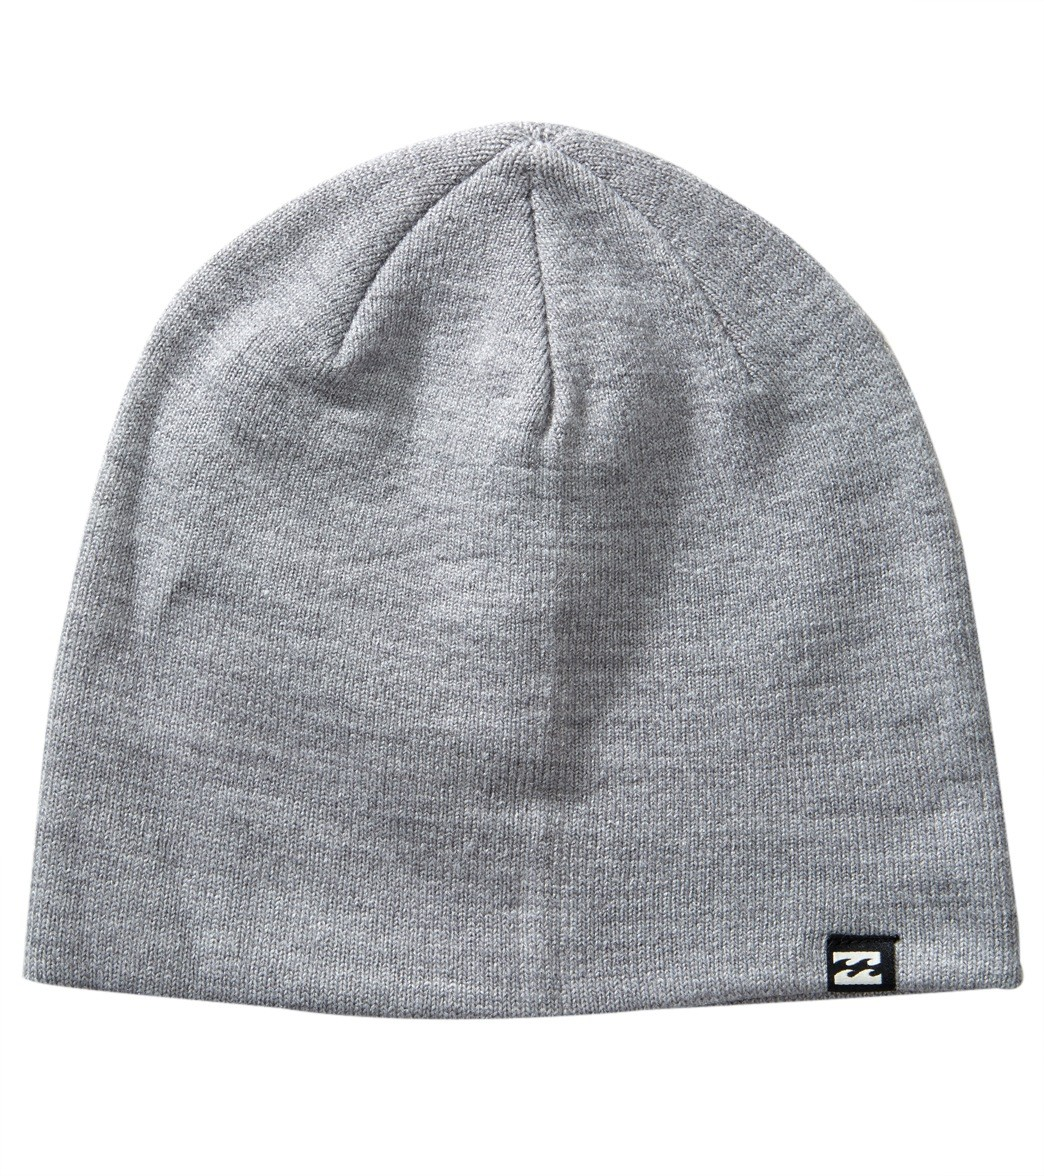 ae327135294 Billabong Men s All Day Beanie at SwimOutlet.com